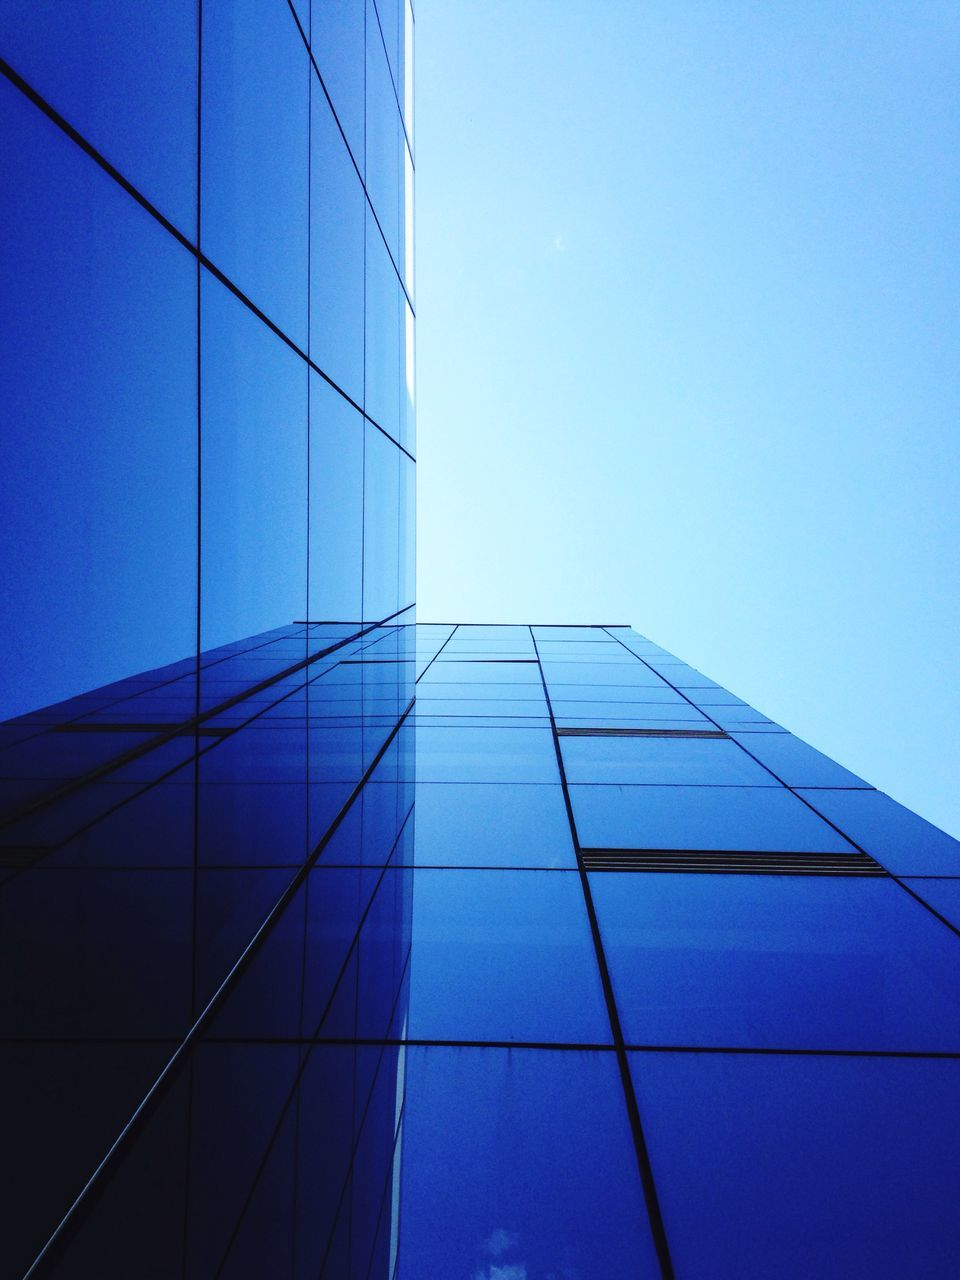 architecture, built structure, building exterior, modern, skyscraper, blue, glass, tall, reflection, growth, low angle view, no people, development, day, city, clear sky, corporate business, outdoors, sky